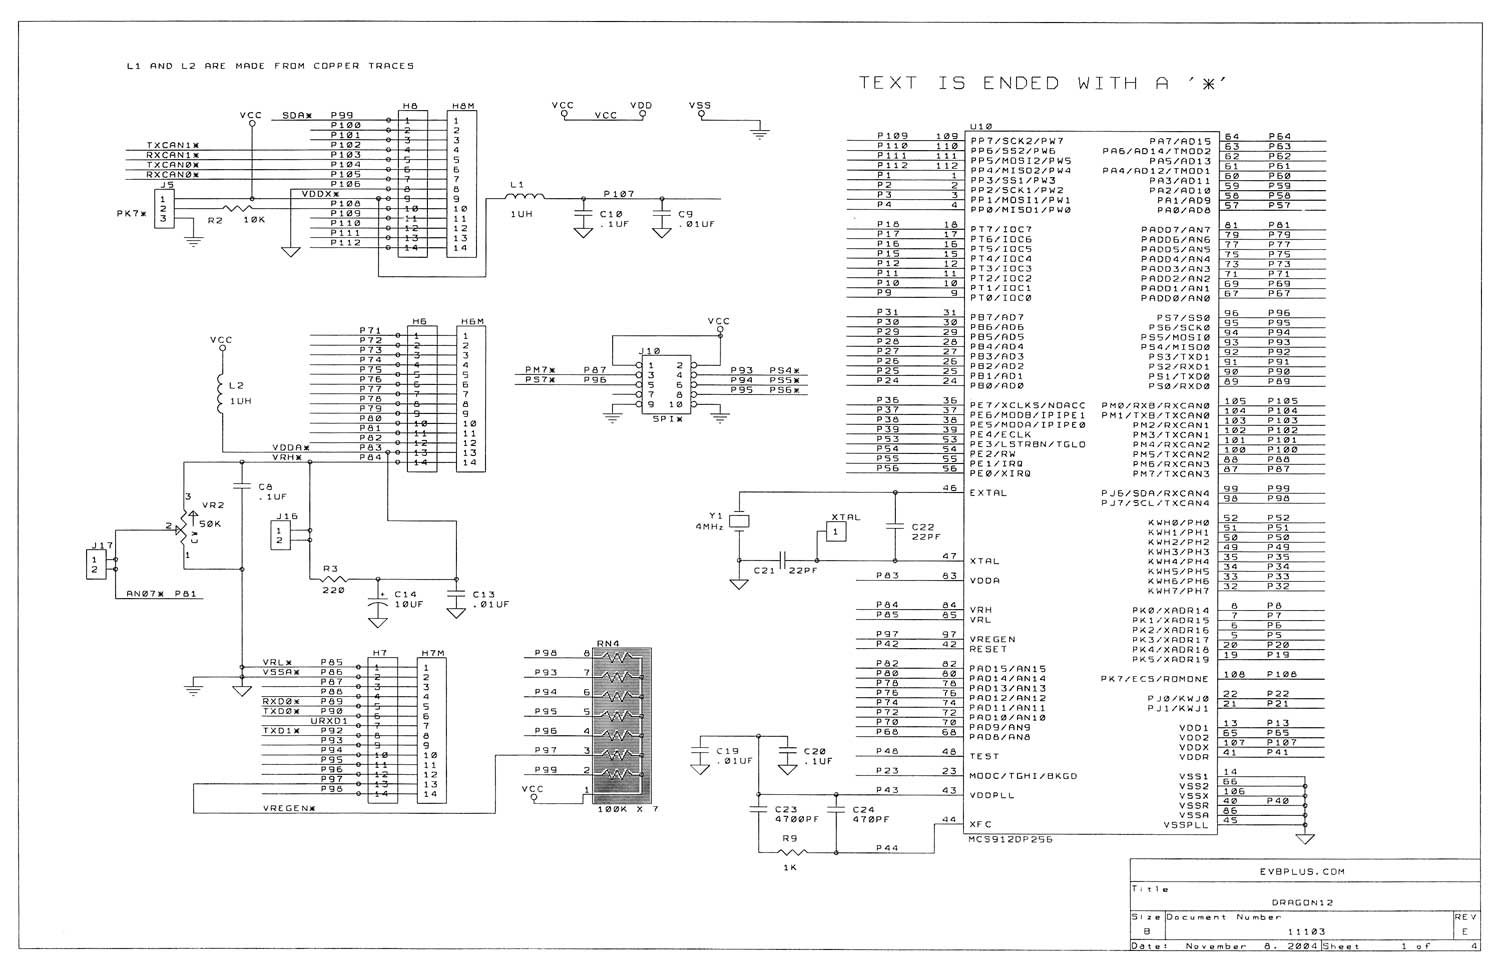 Pwm Intro Following Is The Schematic Of Voltage Controlled Generator Dragon12 1 Reve